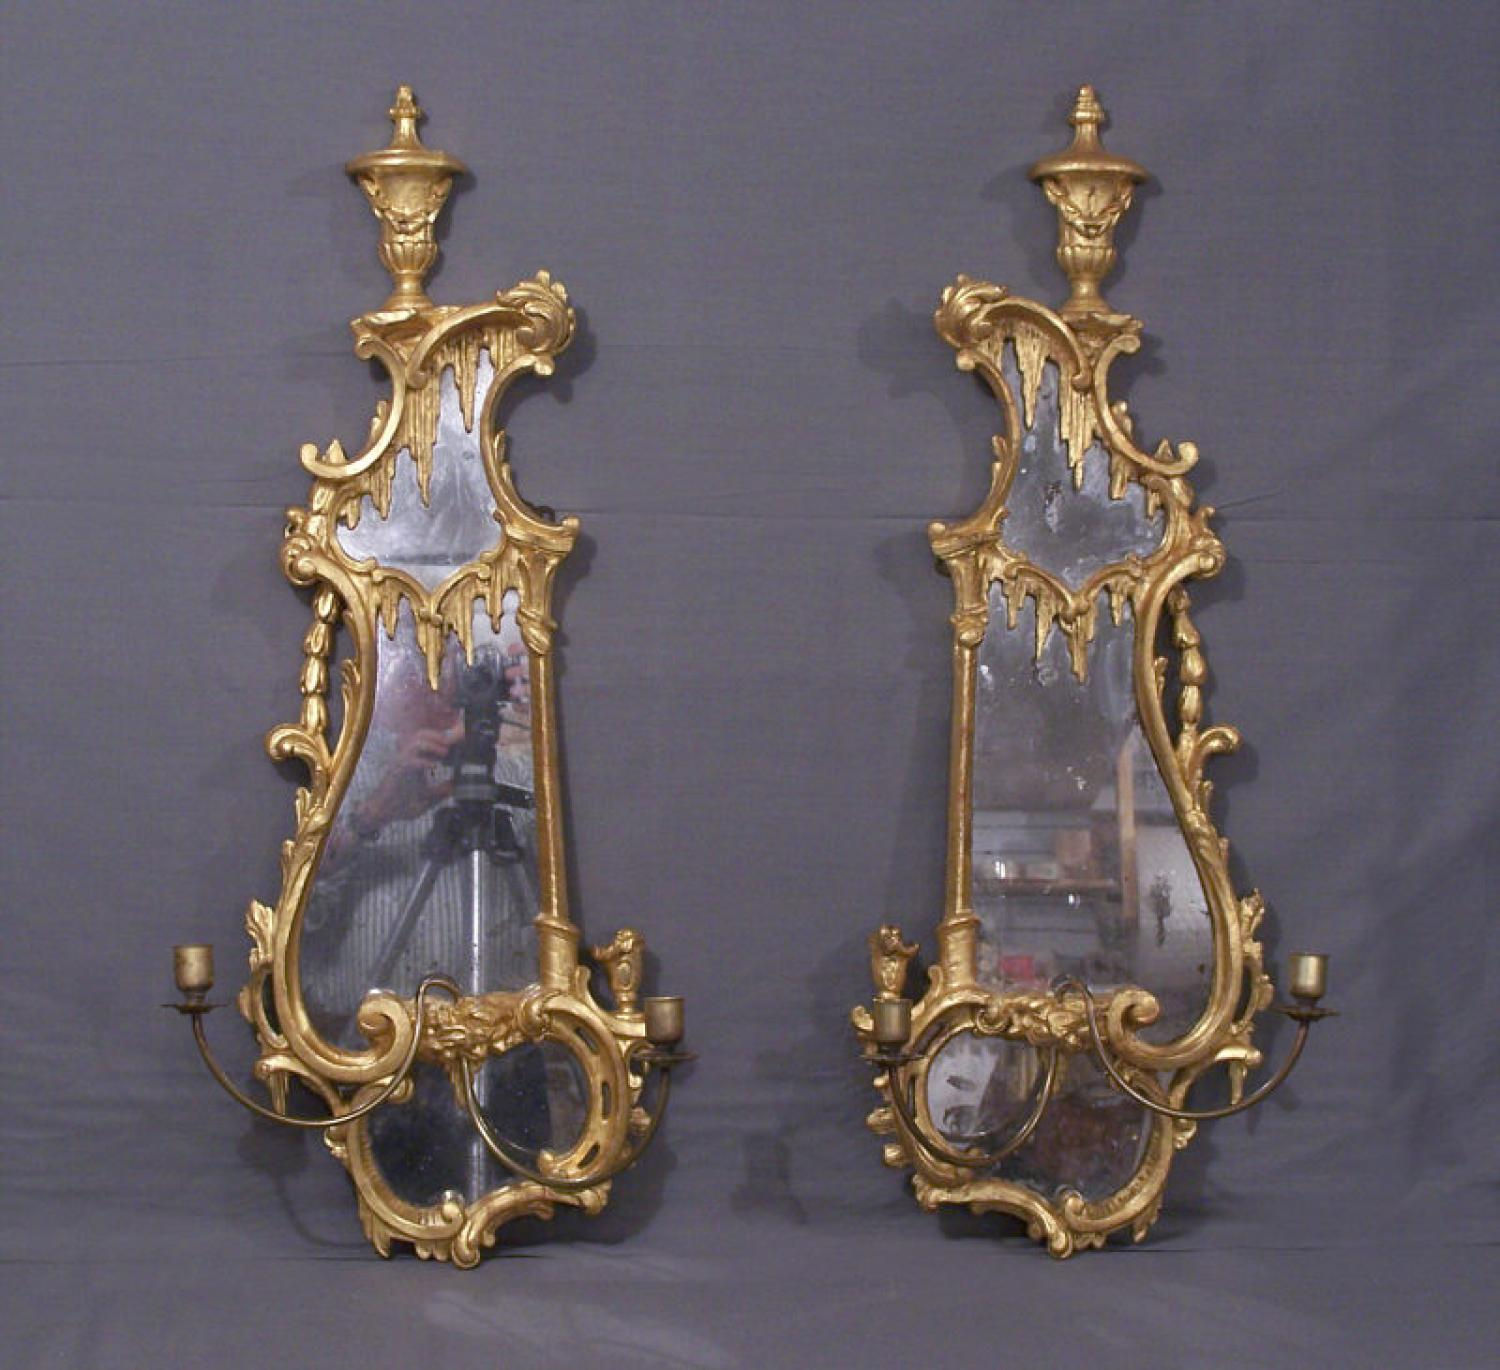 Pr of George lll 18thc gilt wood and mirrored wall sconces